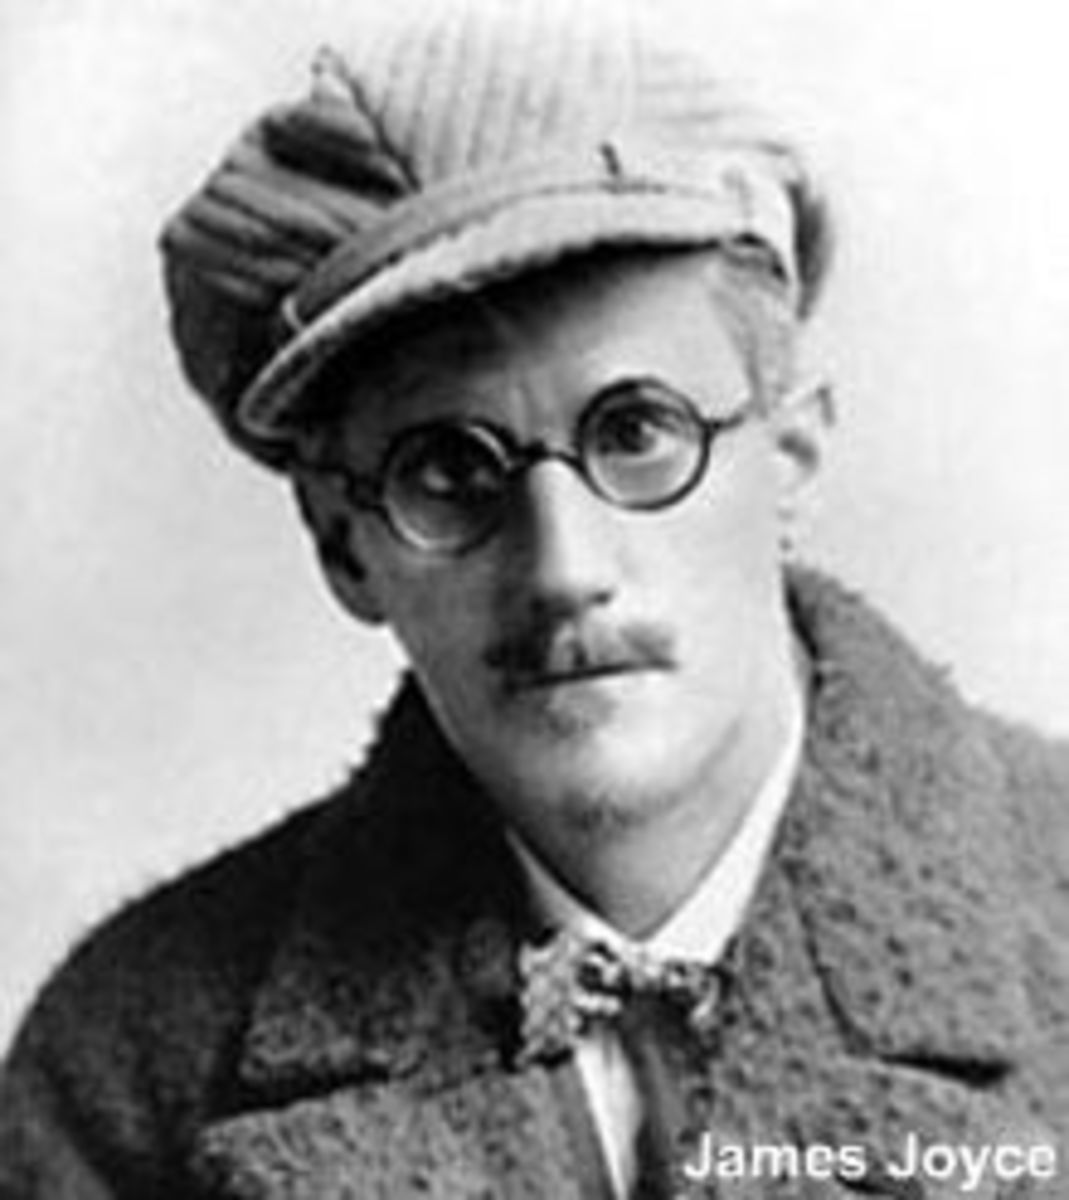 Author James Joyce aimed to bridge the gap between intellectuals and those who were less literate in his work by giving the working class a voice in his storytelling.